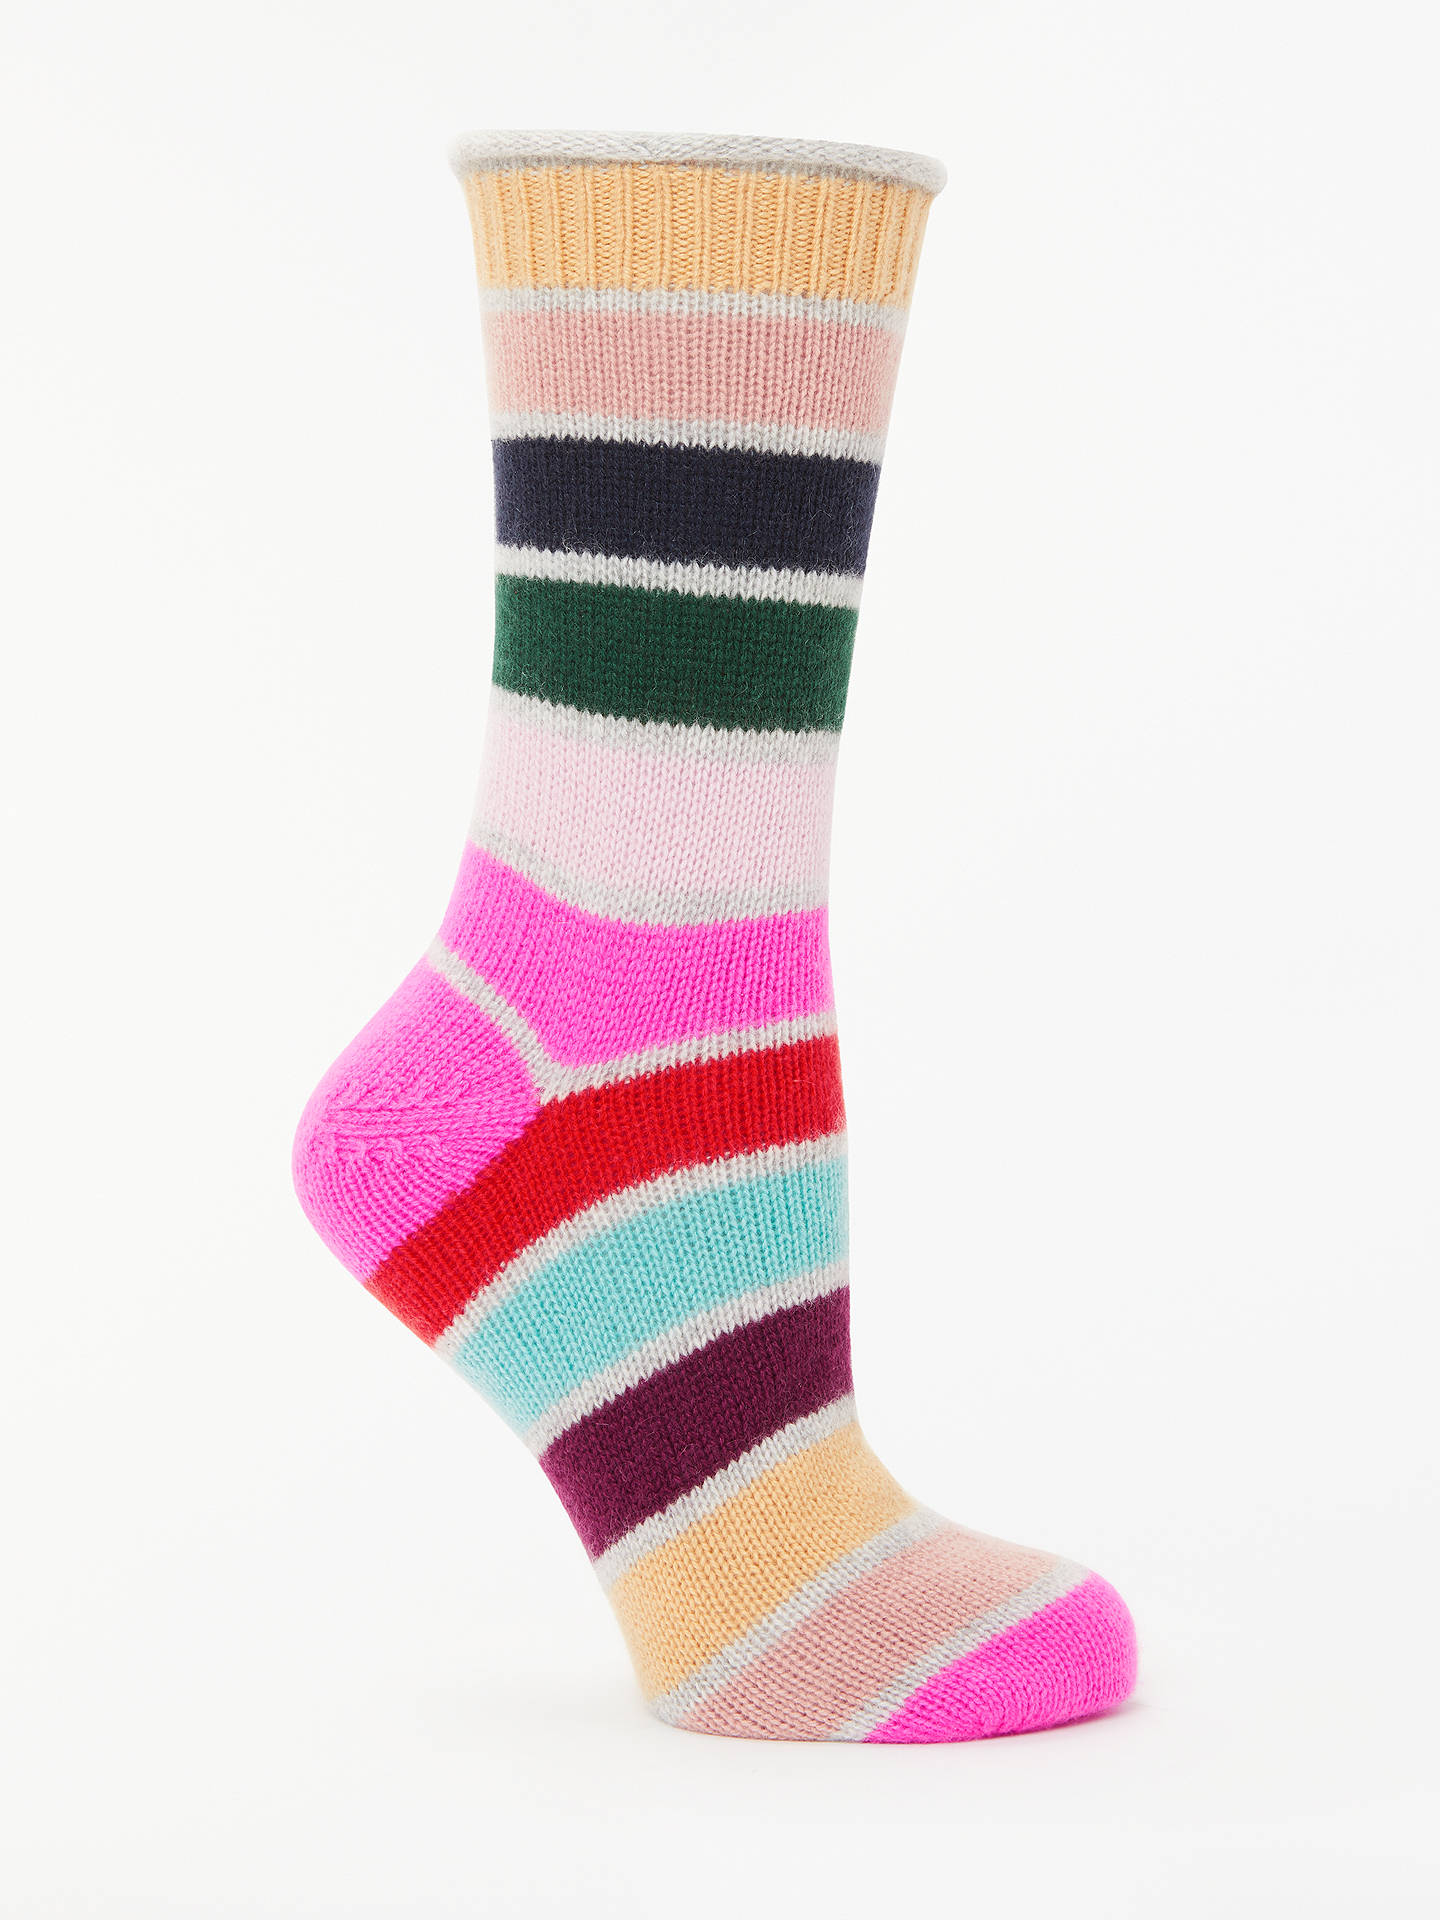 BuyBoden Stripe Cashmere Ankle Socks, Multi Stripe, One Size Online at johnlewis.com